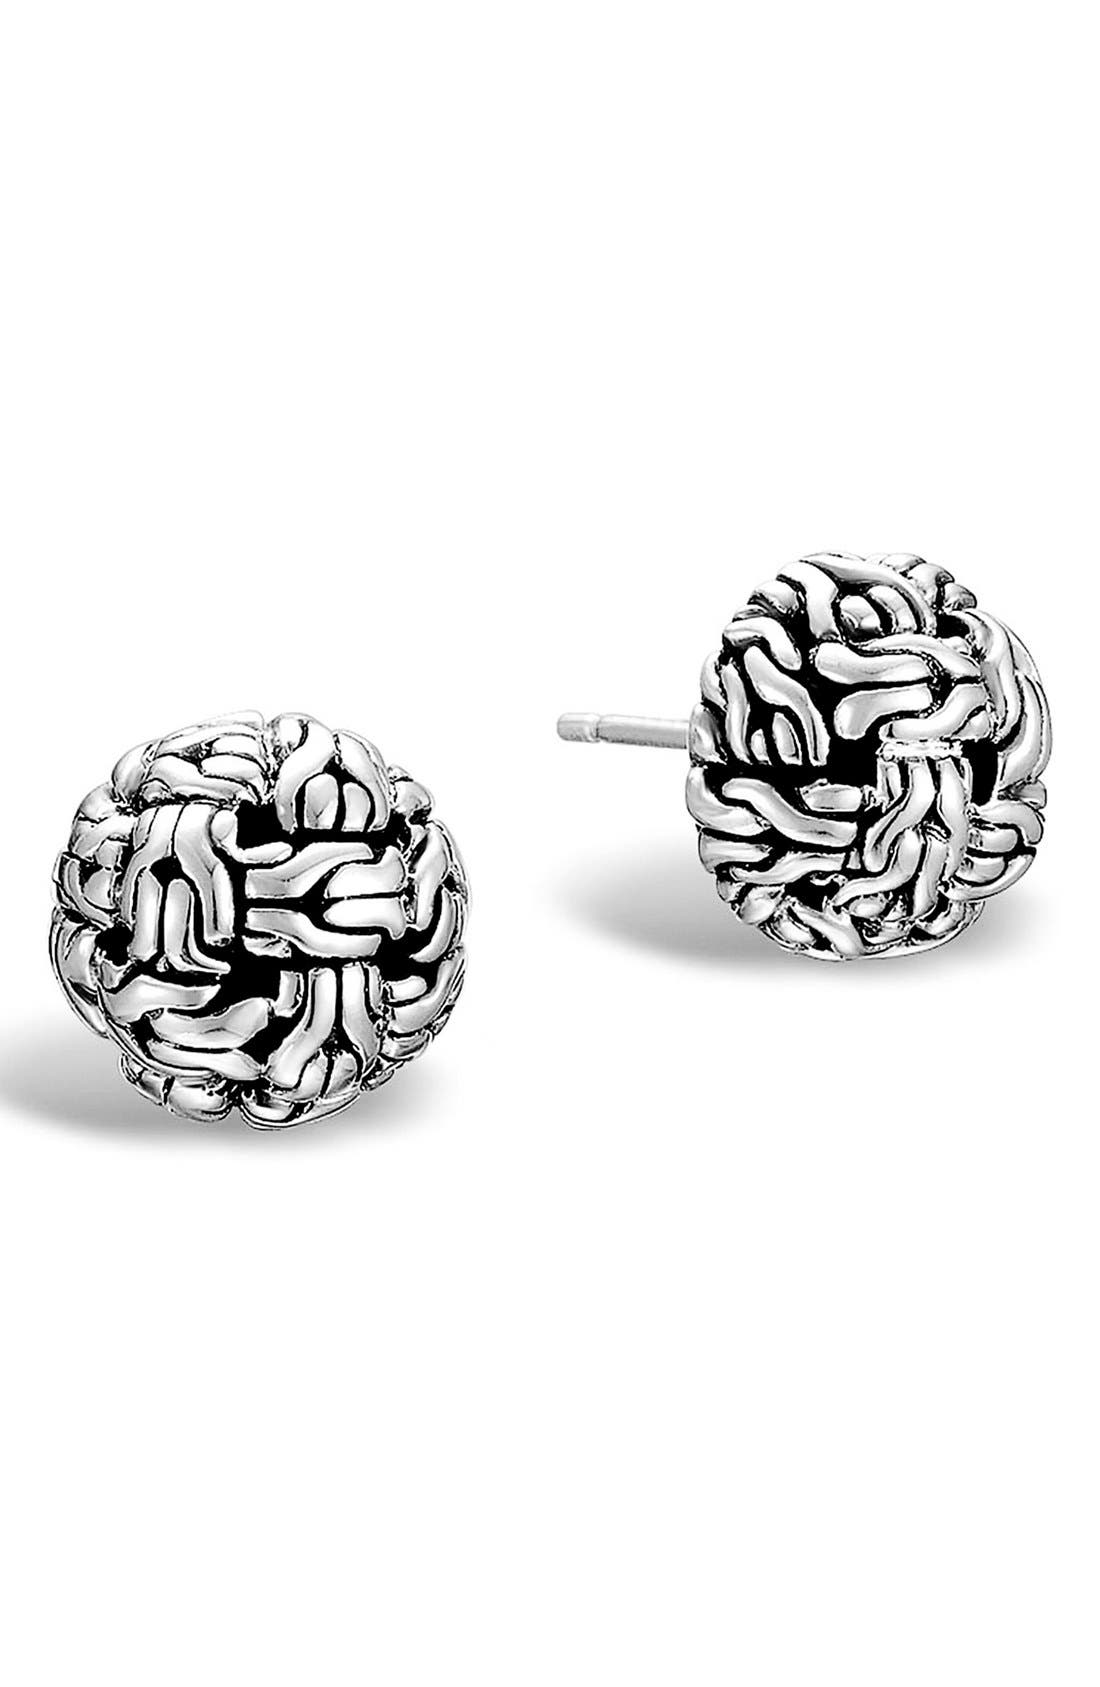 Main Image - John Hardy 'Classic Chain' Stud Earrings